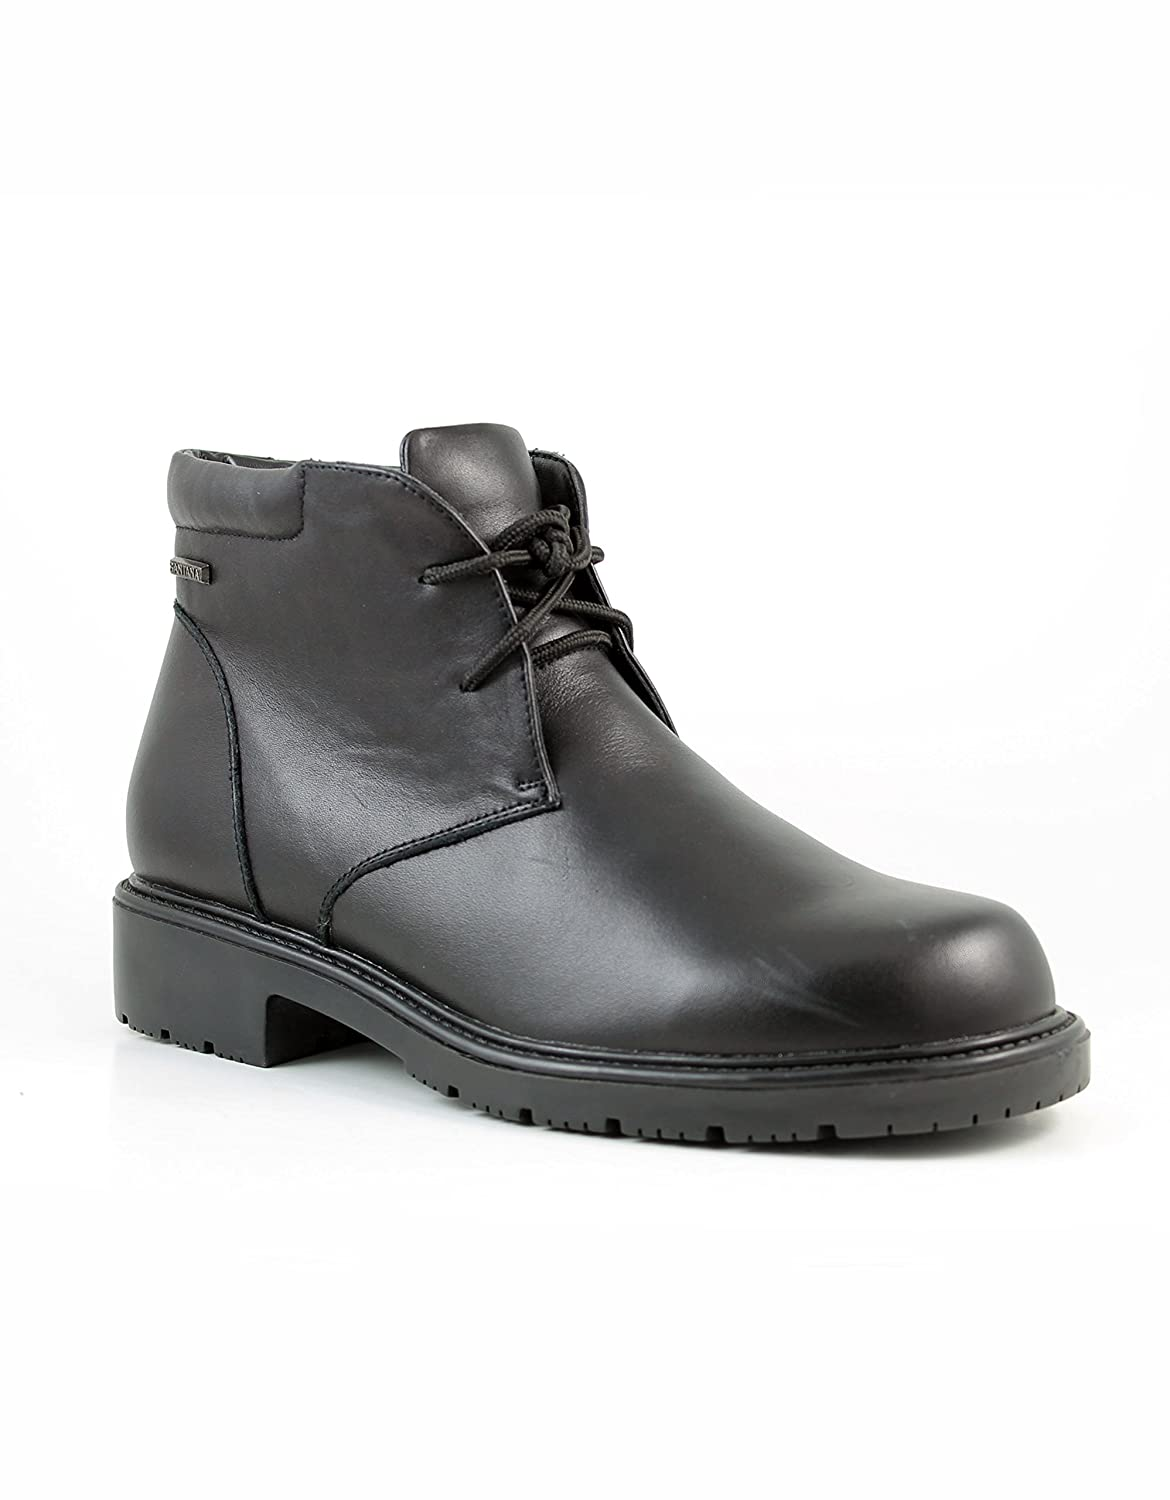 Mens mid cut Leather Winter Boot ANTOINE Lace Up with Faux Fur Lining